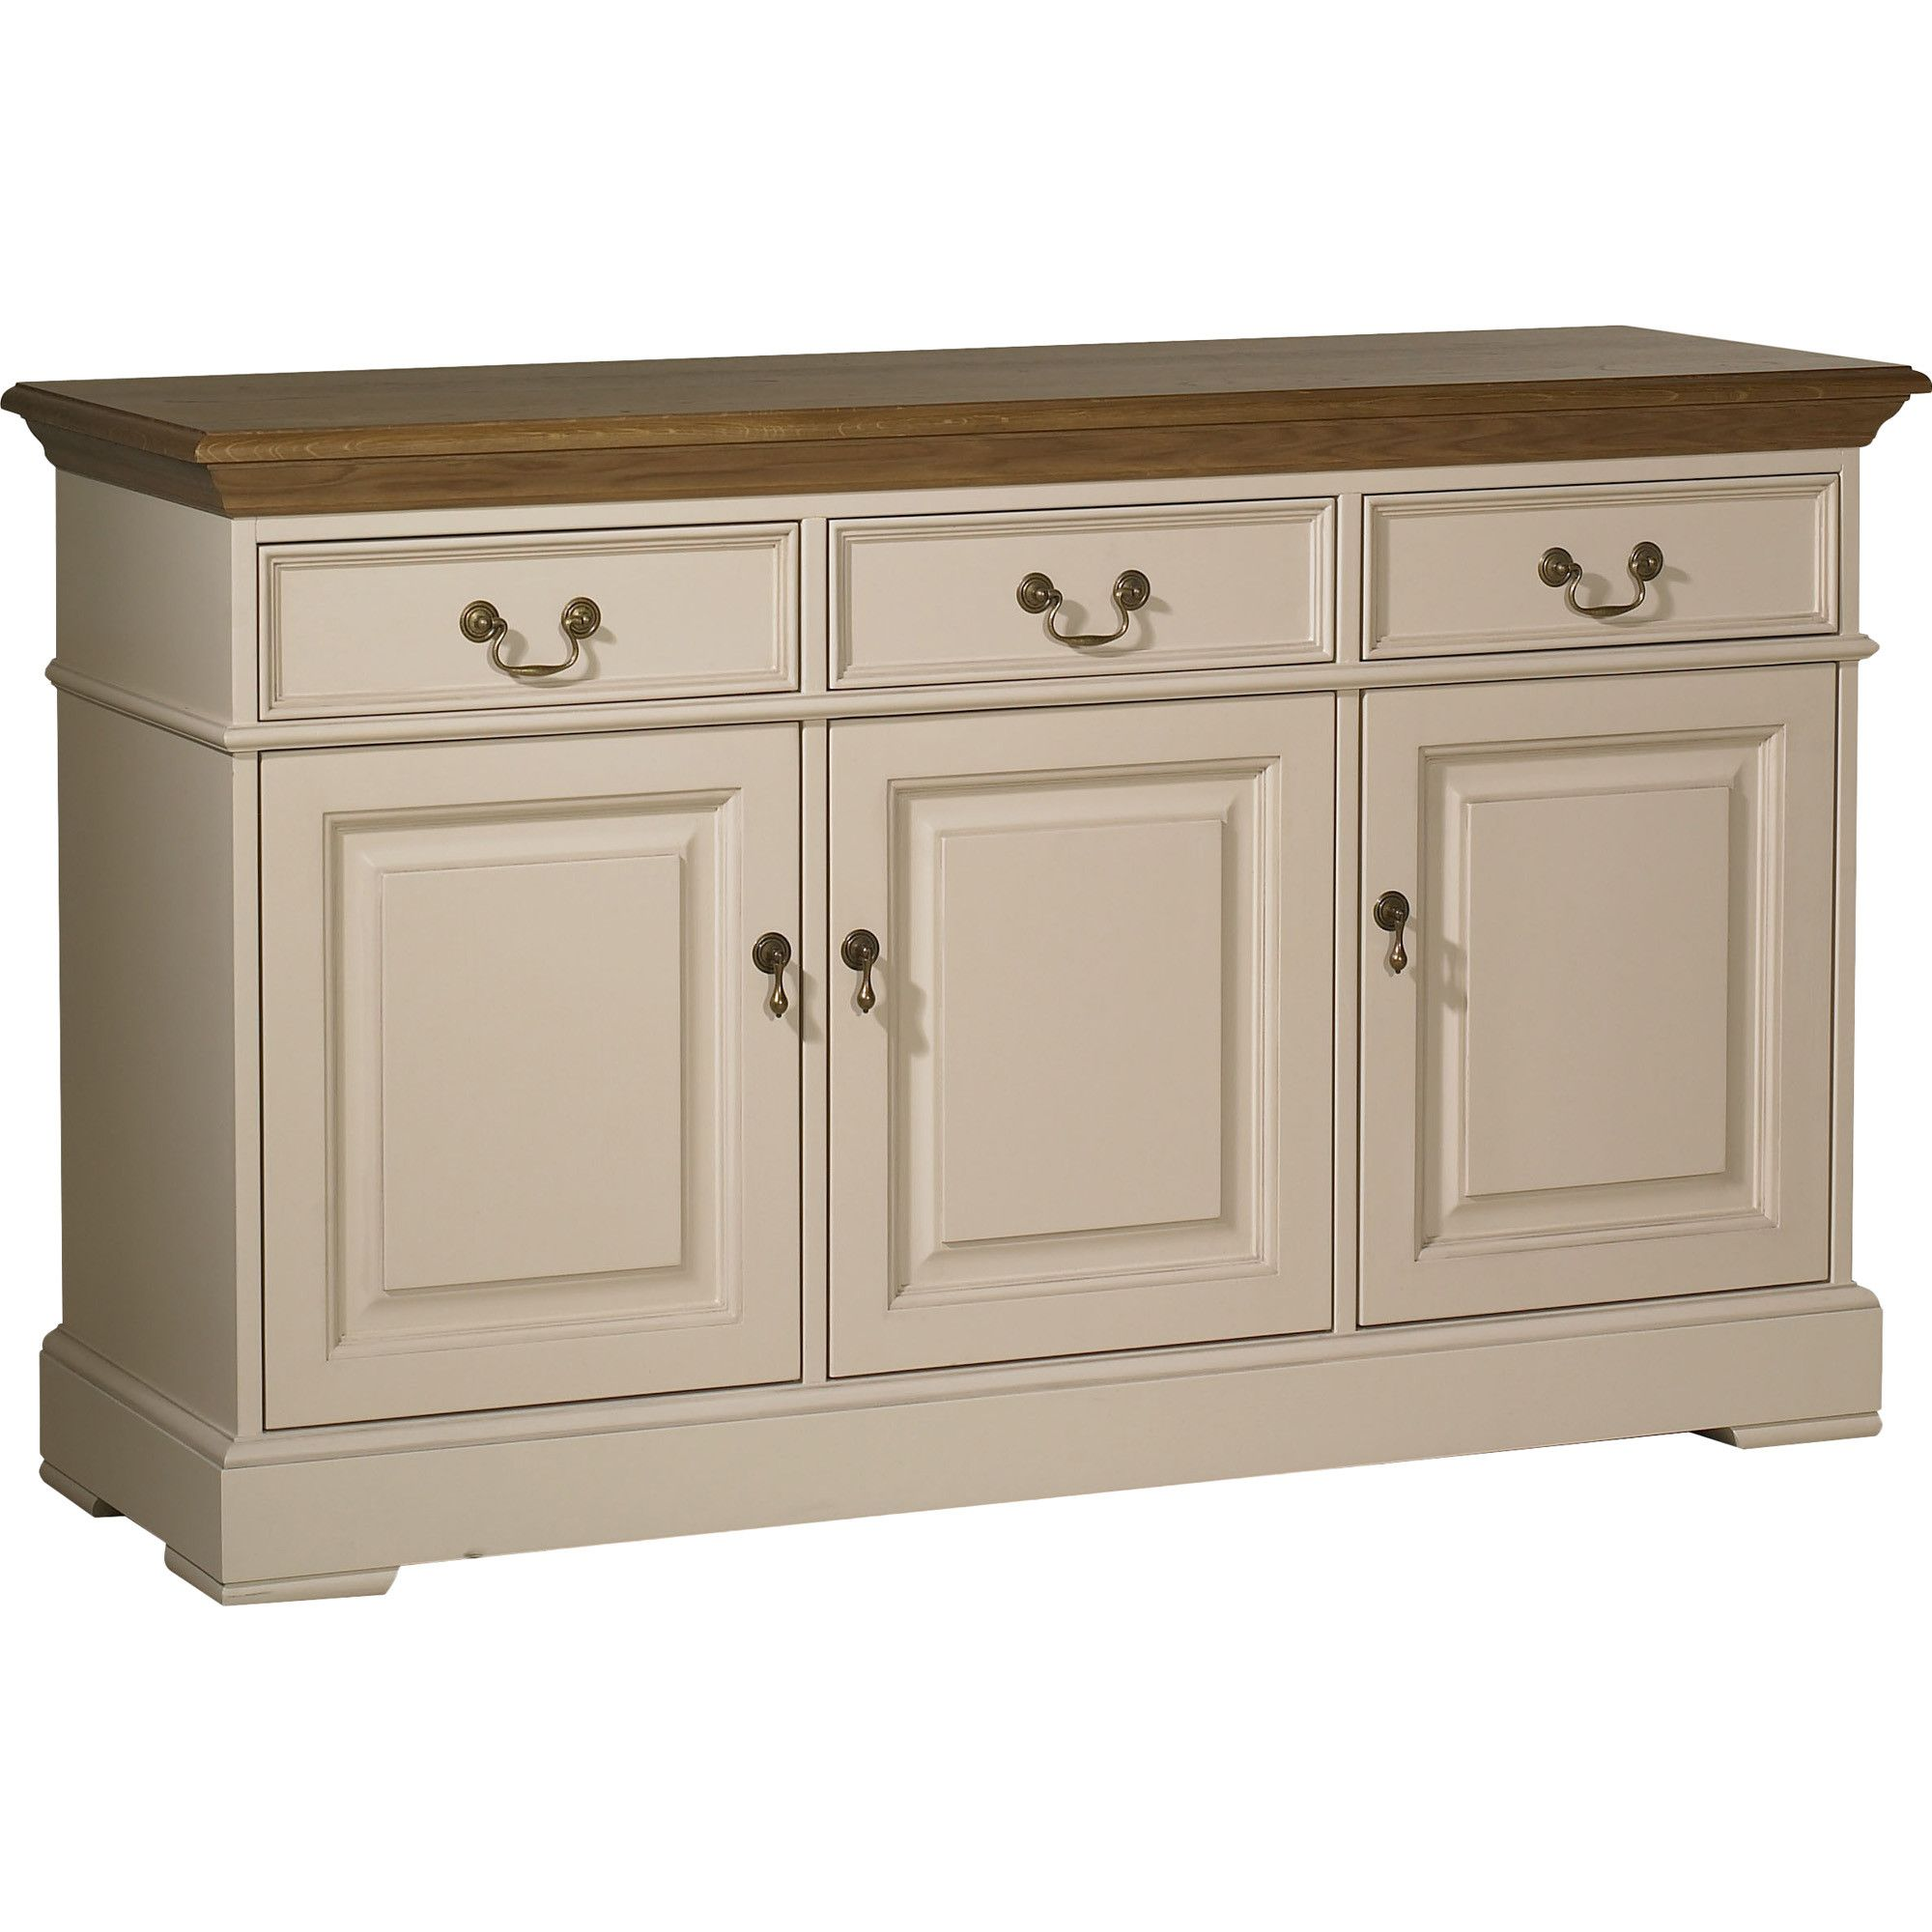 YP Furniture Country House Three Door Sideboard - Oak Top and Ivory at Tesco Direct